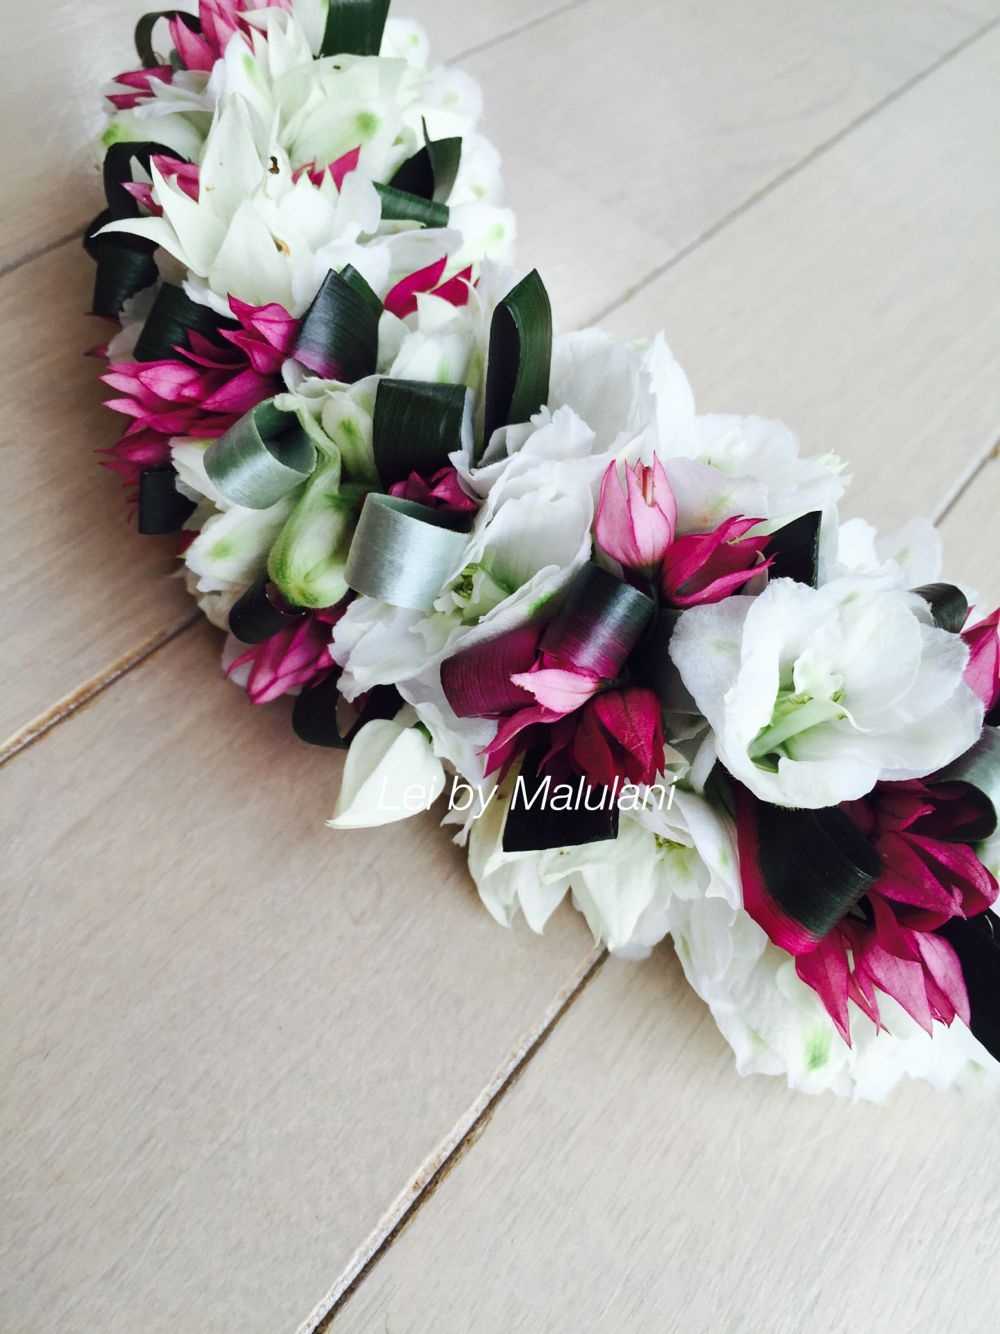 Lei by meg breeding heart beautiful hand made island leis find this pin and more on beautiful hand made island leis by anitakabua7 izmirmasajfo Images